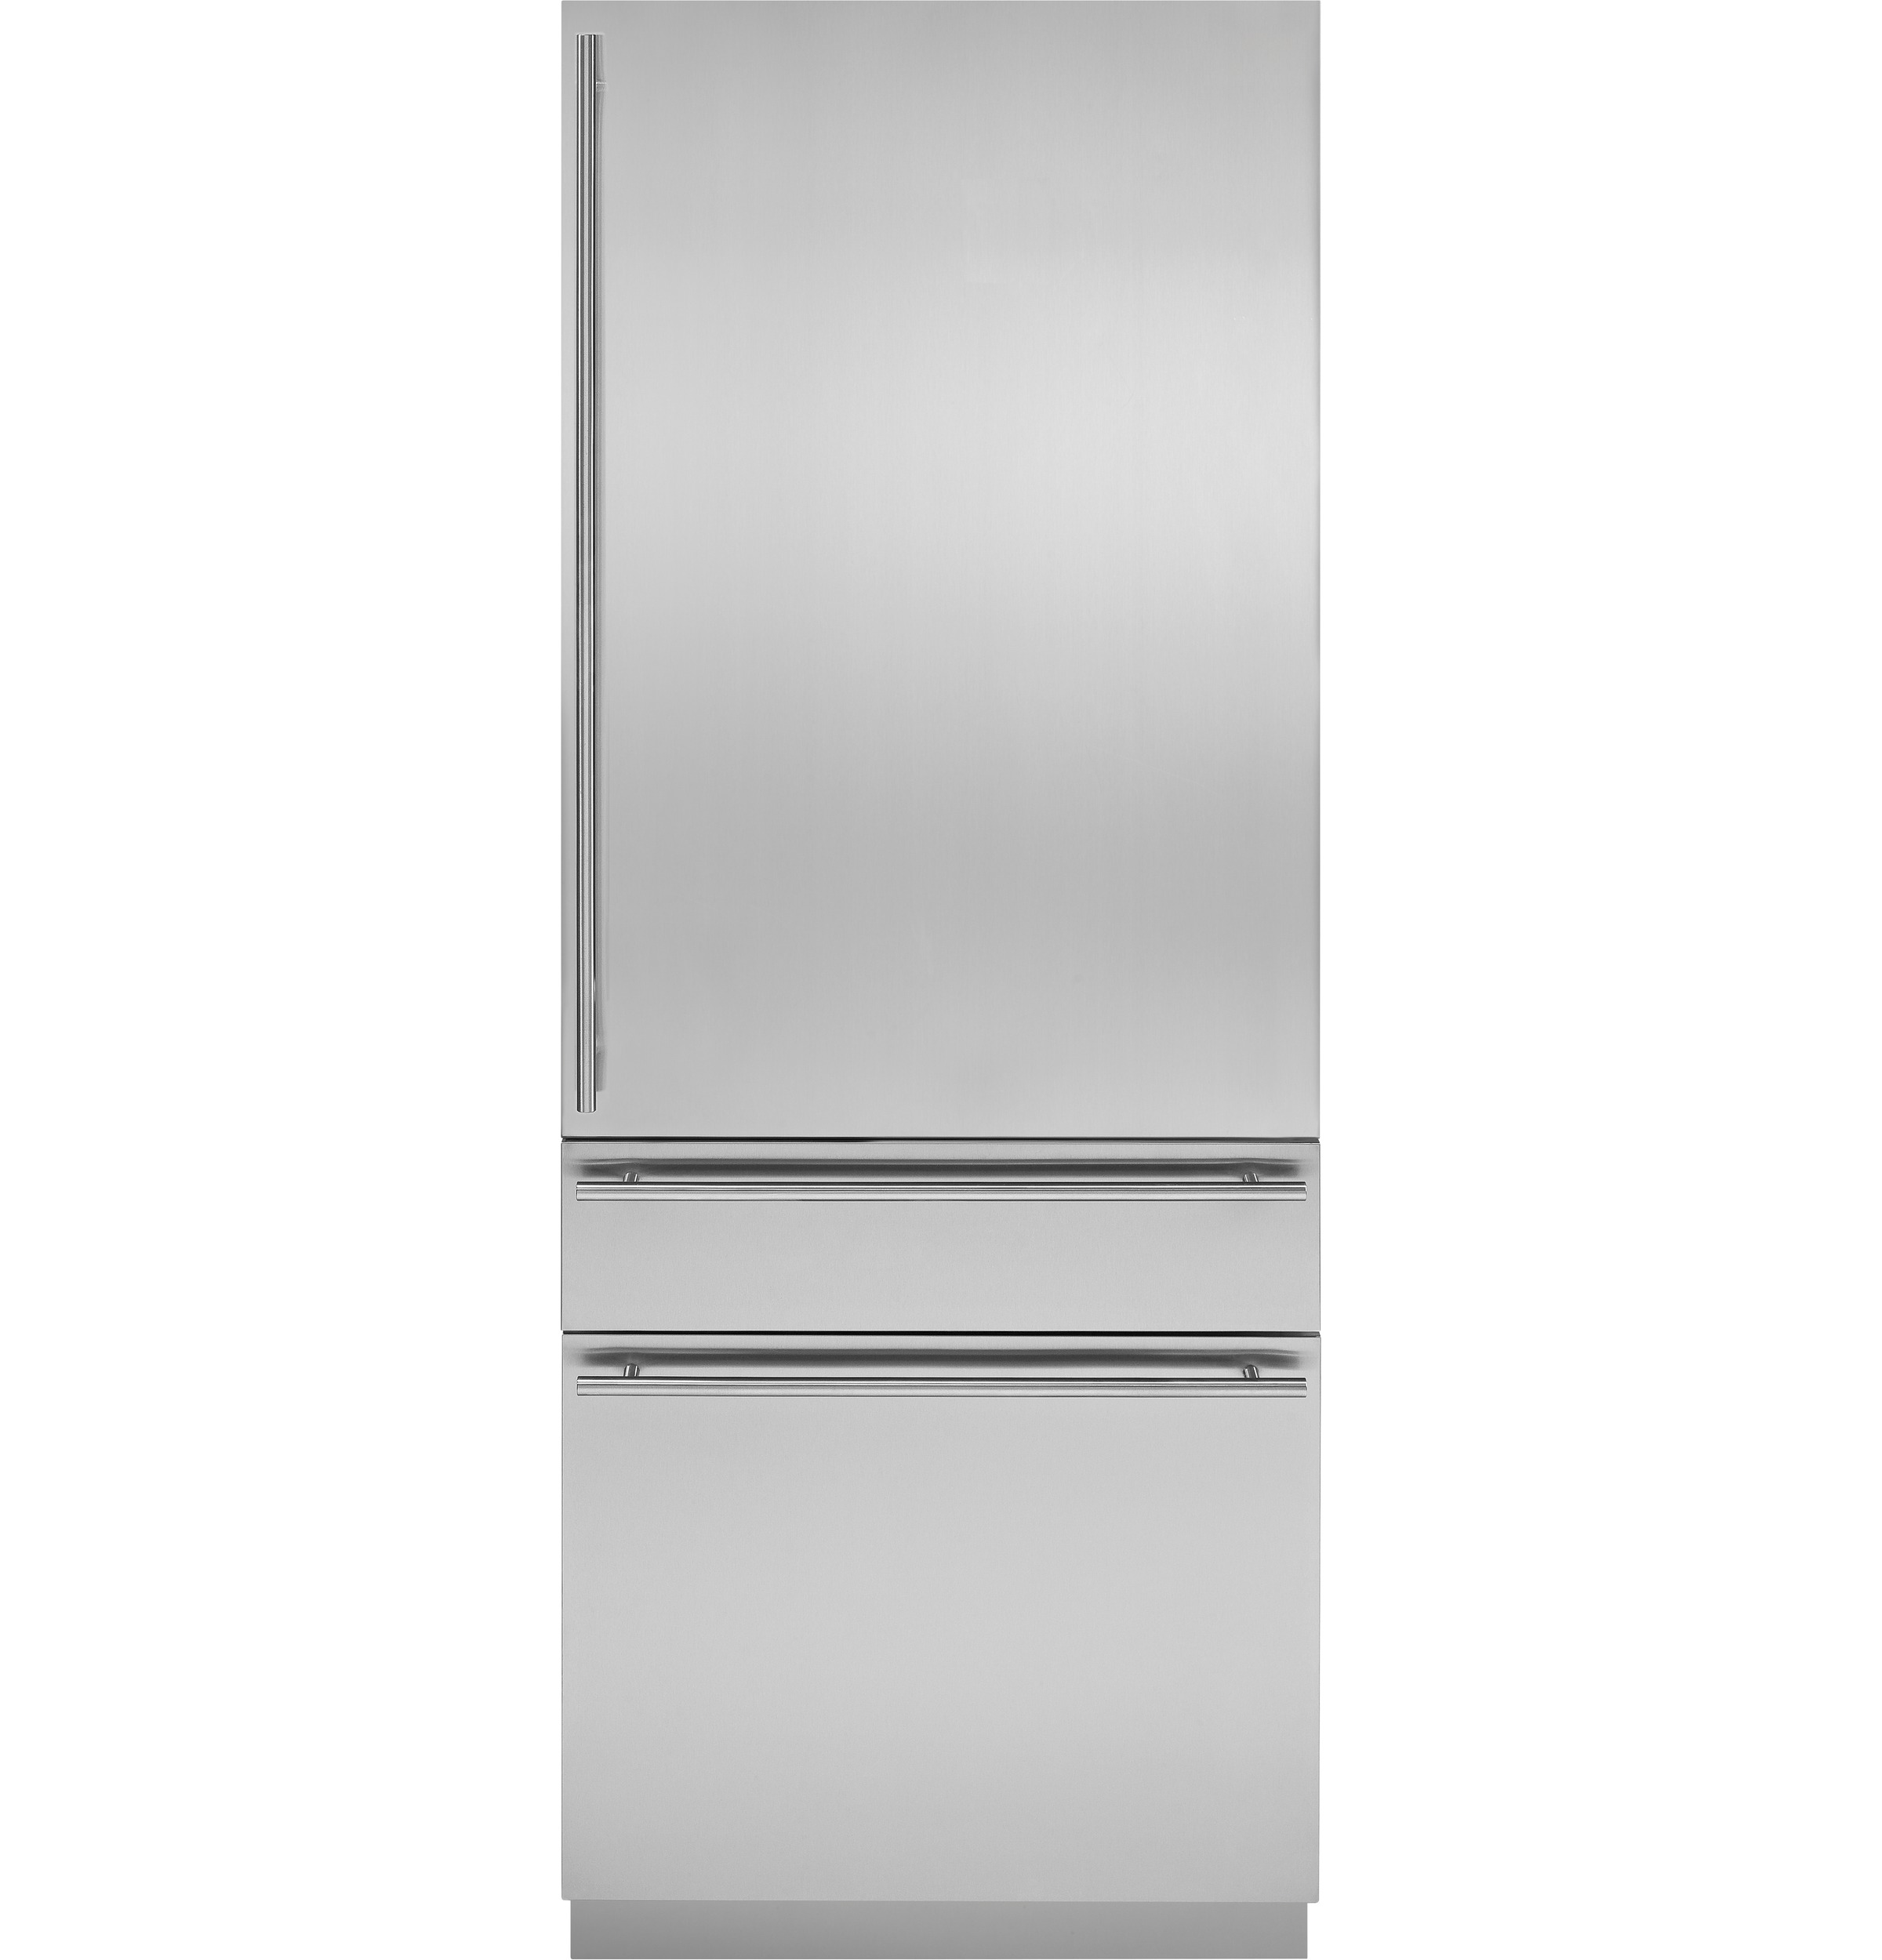 prod storage drawer sharpen op refrigerator clean frigidaire wid oven hei gas product single details d wall with jsp self spin